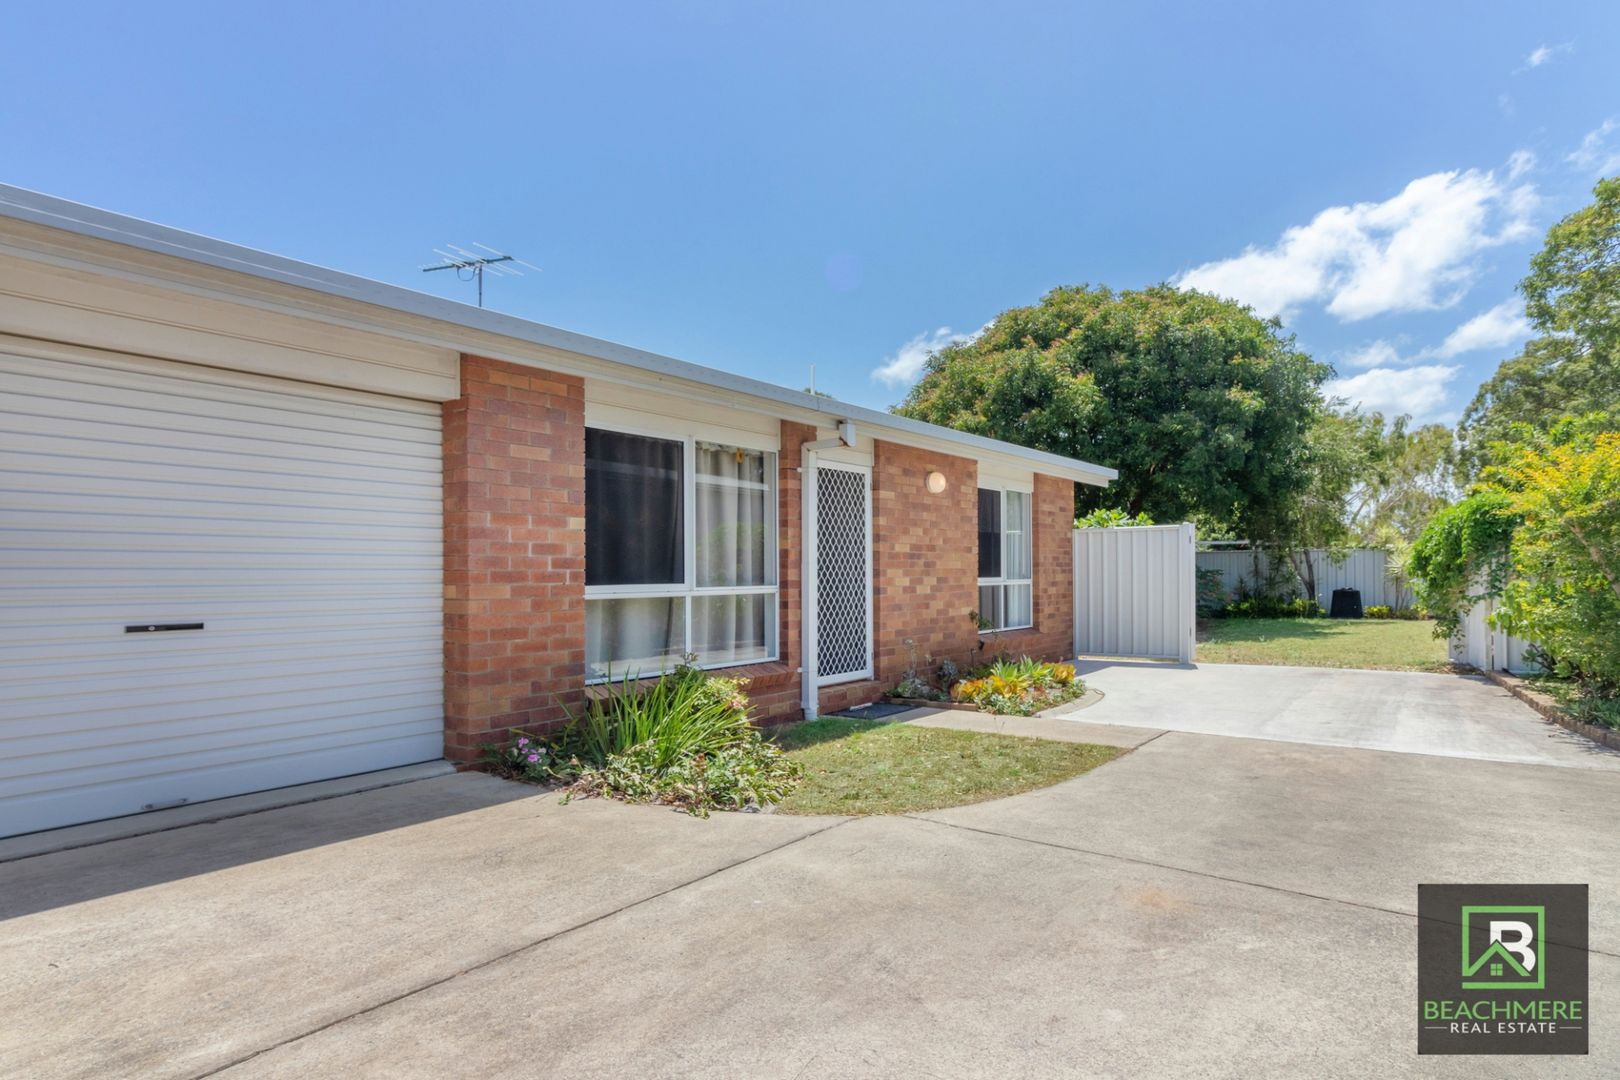 2/126 Bishop Road, Beachmere QLD 4510, Image 0